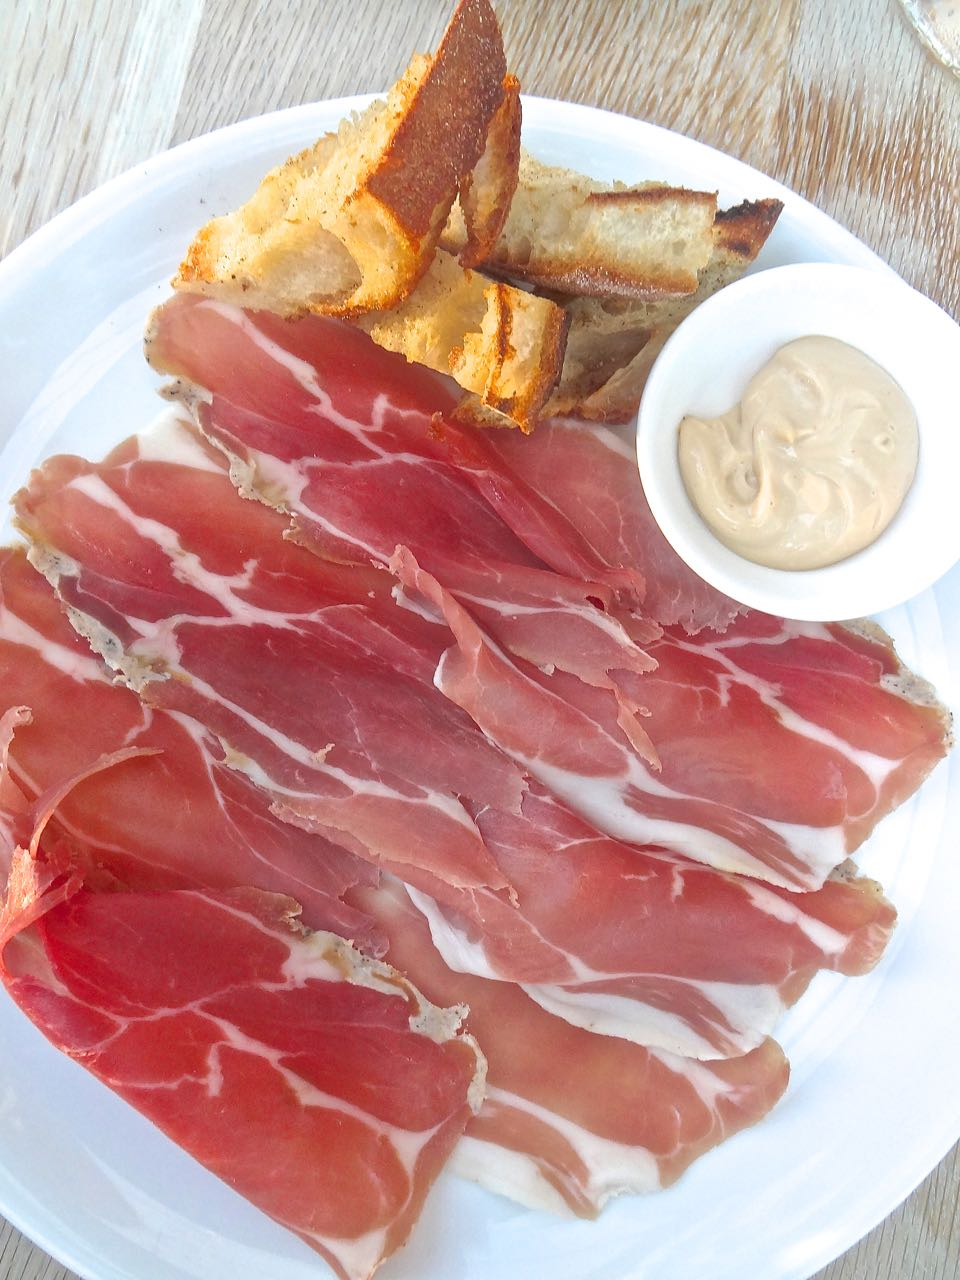 Cured Niagara Ham with red eye mayonnaise and grilled sourdough bread